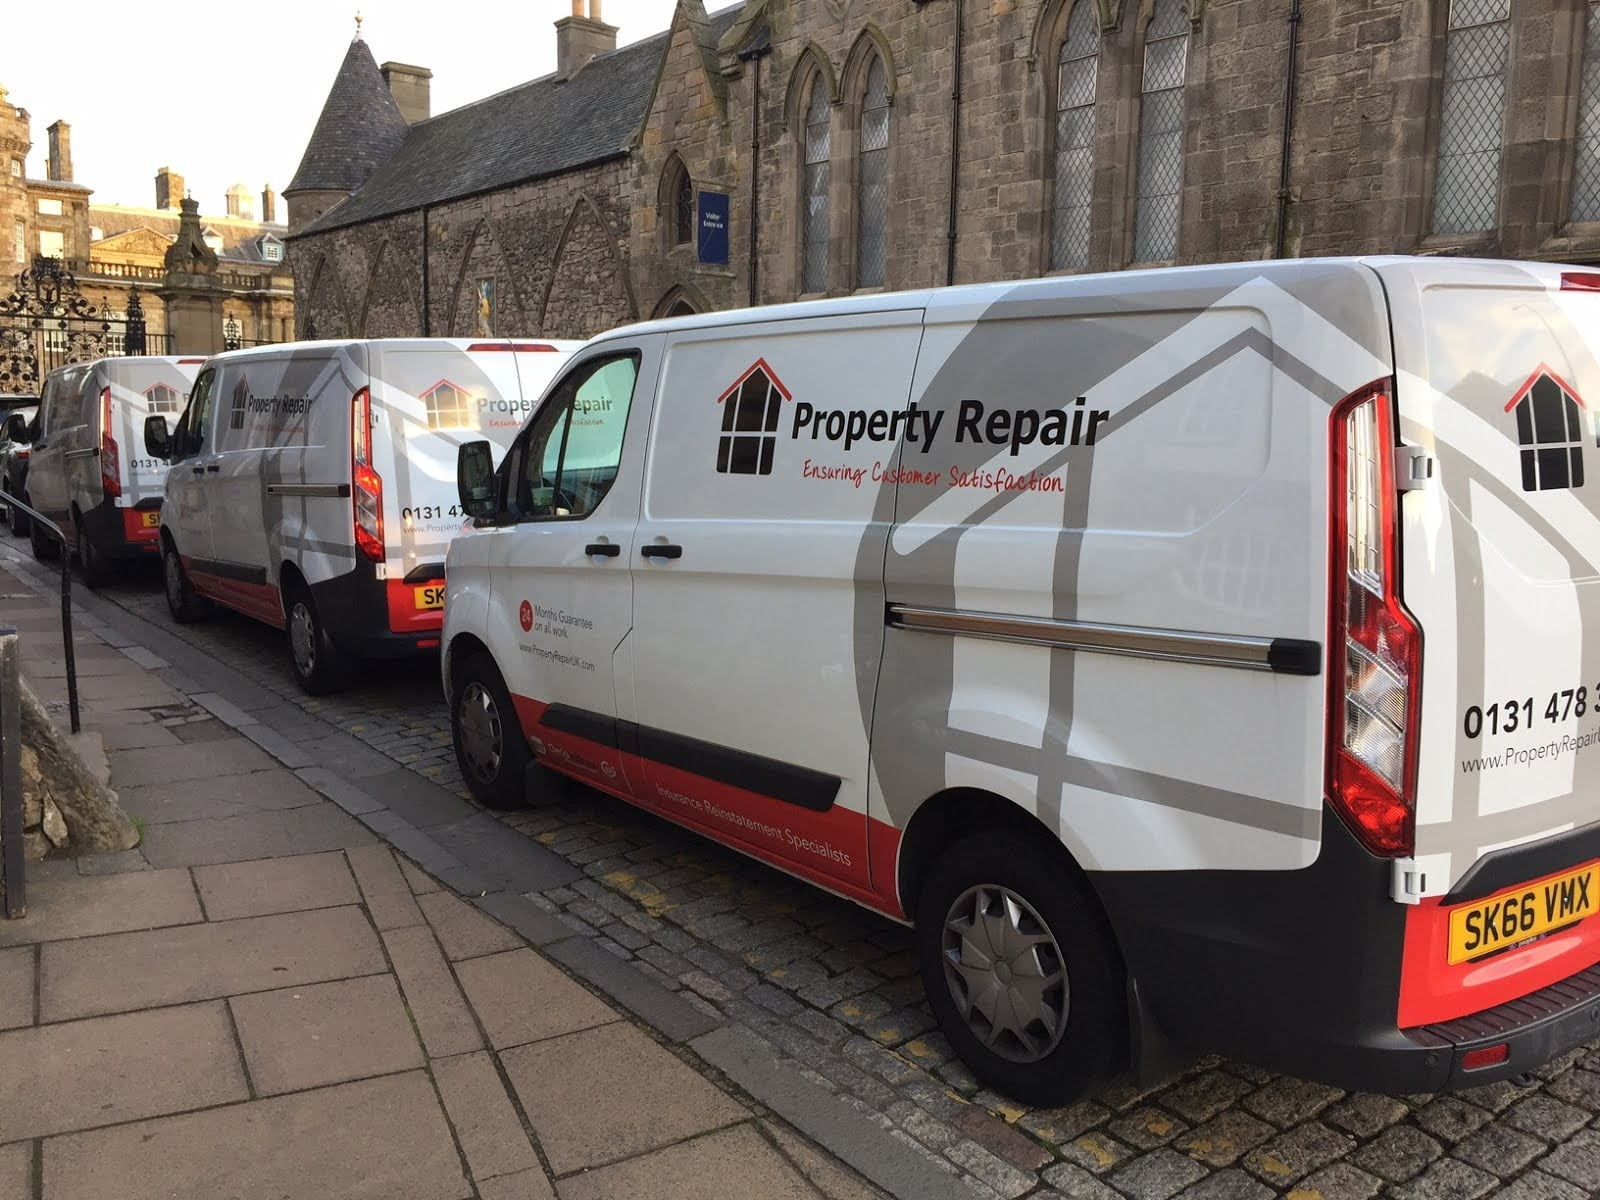 Property-Repair-Ltd-Which-Trusted-Traders